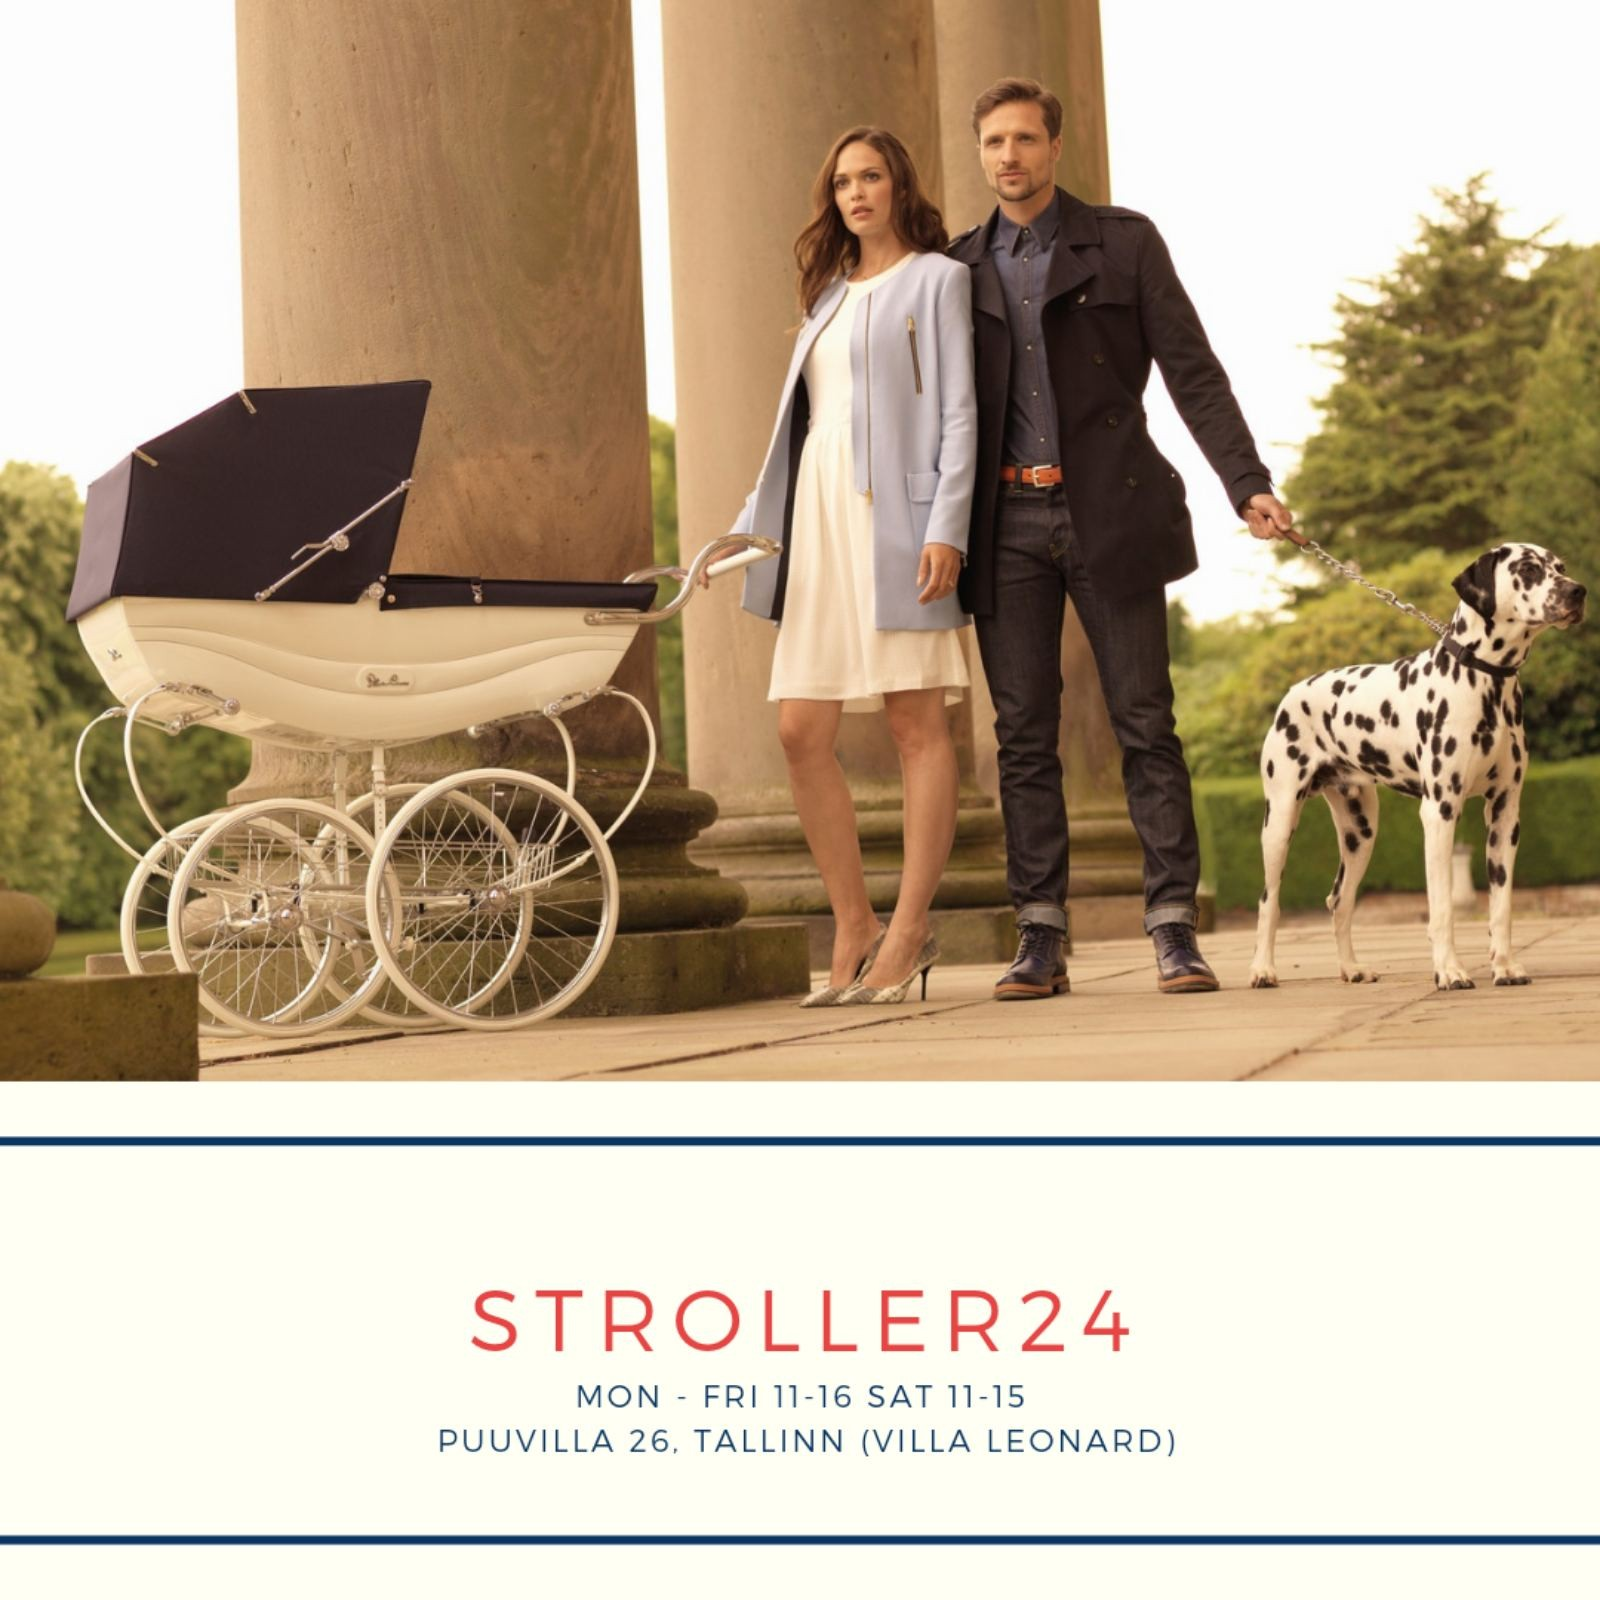 Welcome to Stroller24!